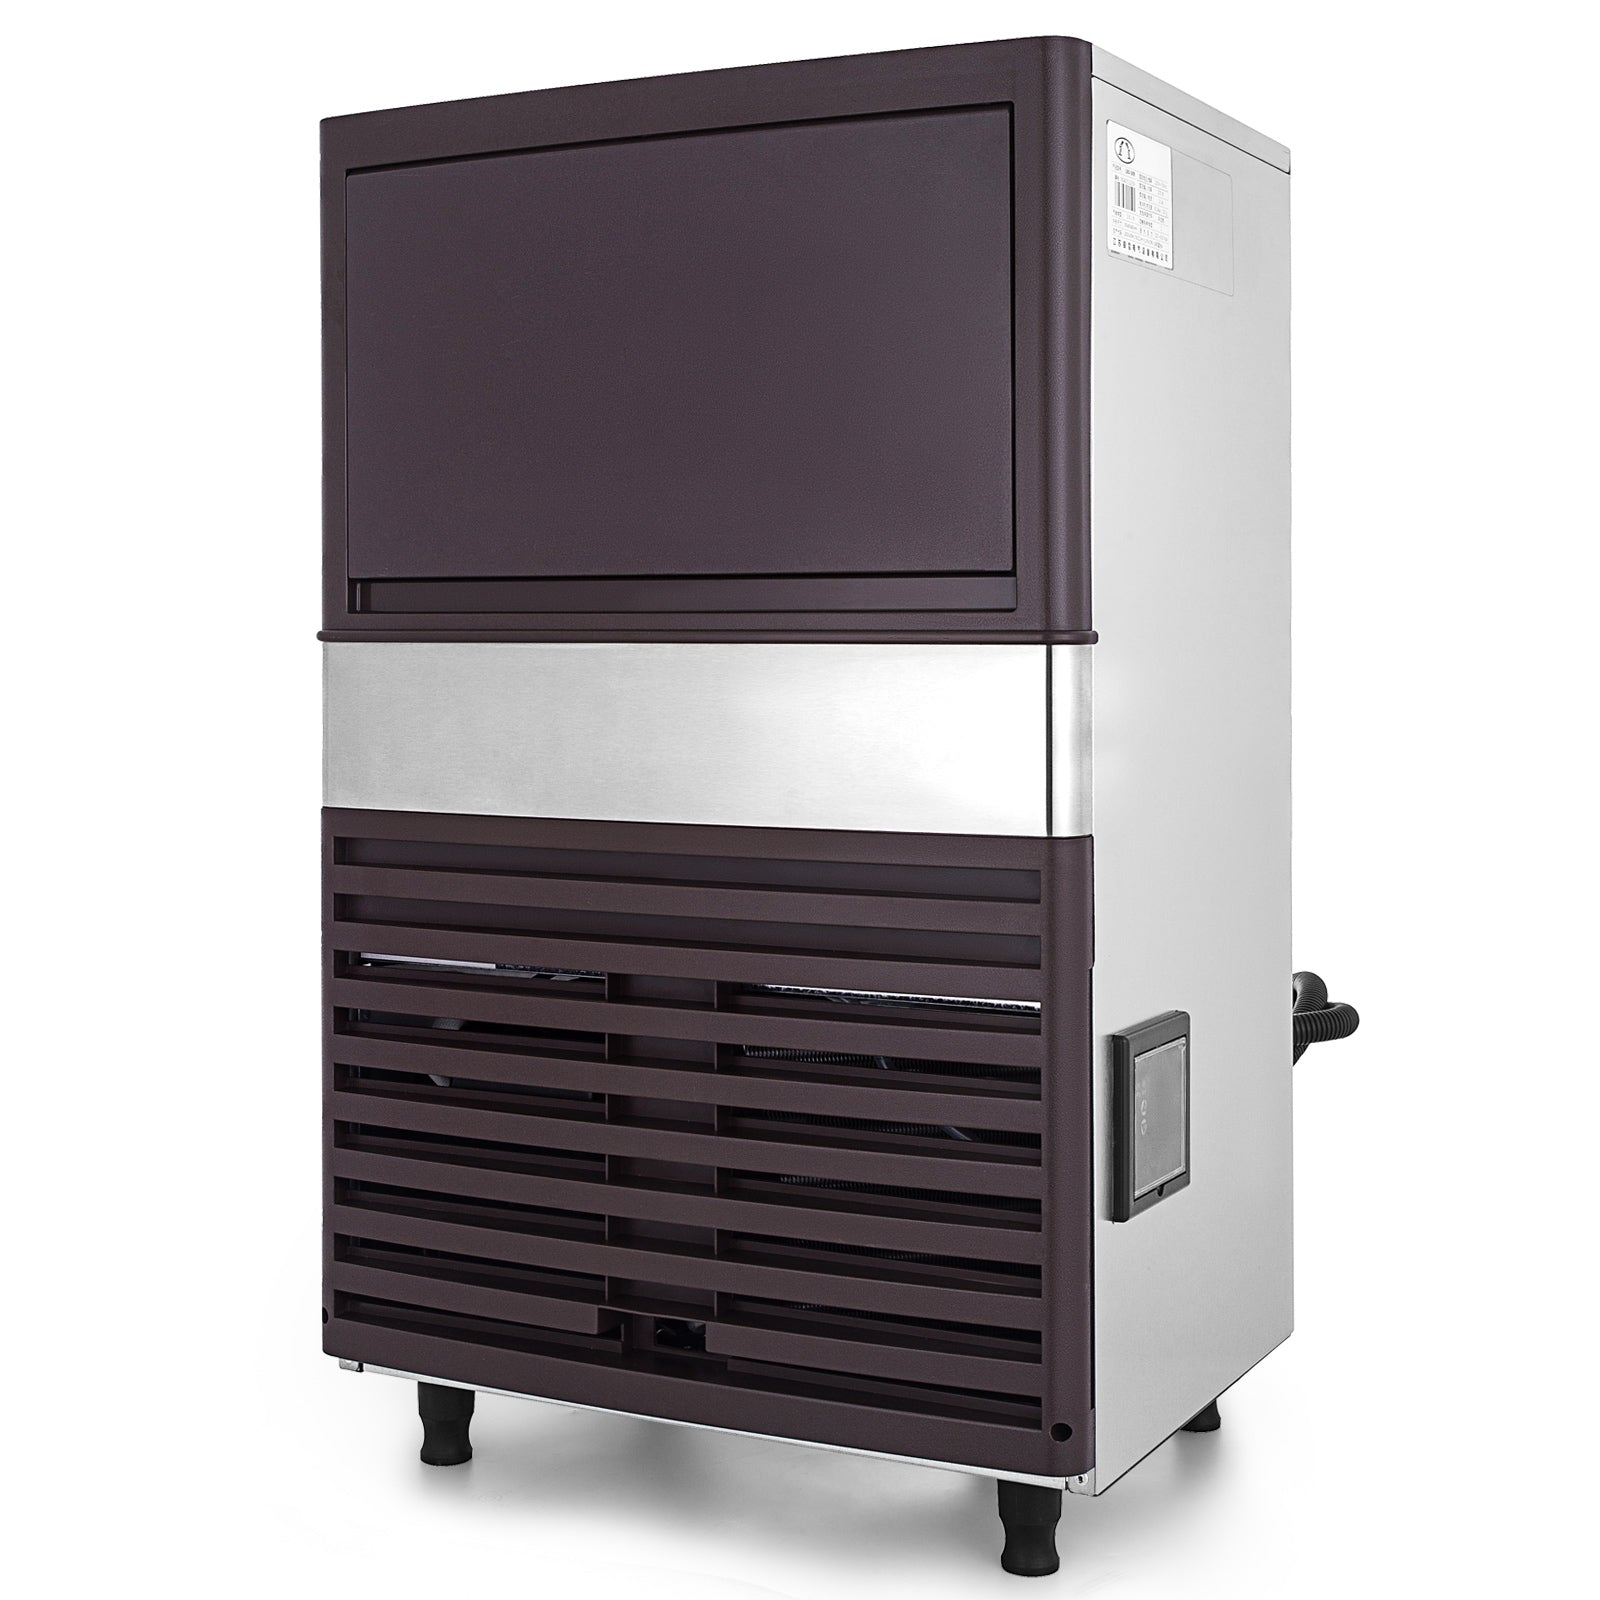 Commercial Ice Maker Ice Cube Making Machine Built-in Stainless Steel Restaurant